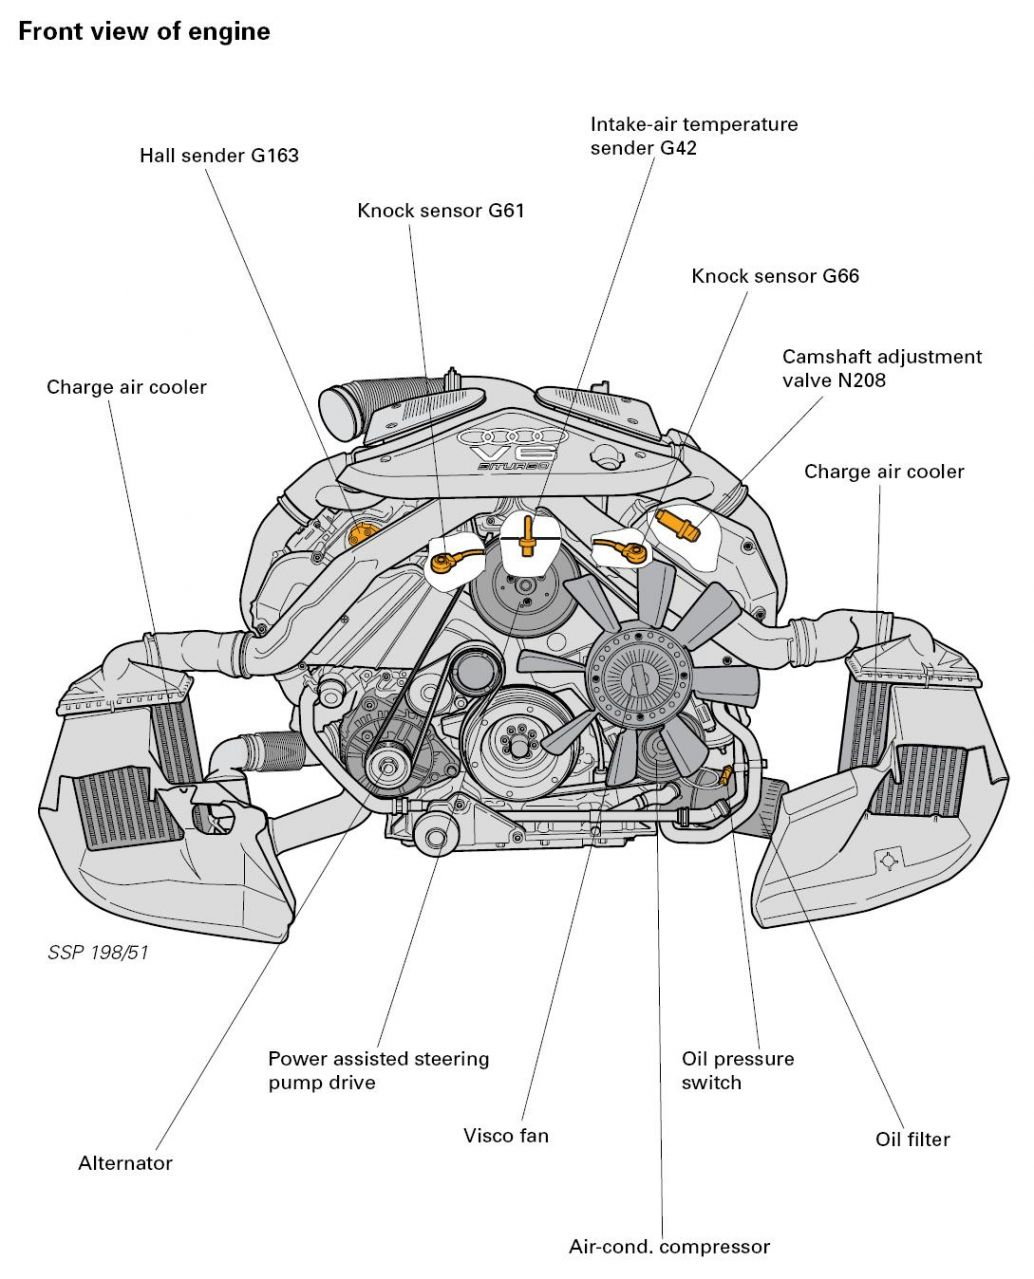 2001 Audi S4 Wiring Diagram Vehicle Diagrams B5 Engine Enthusiast U2022 Rh Bwpartnersautos